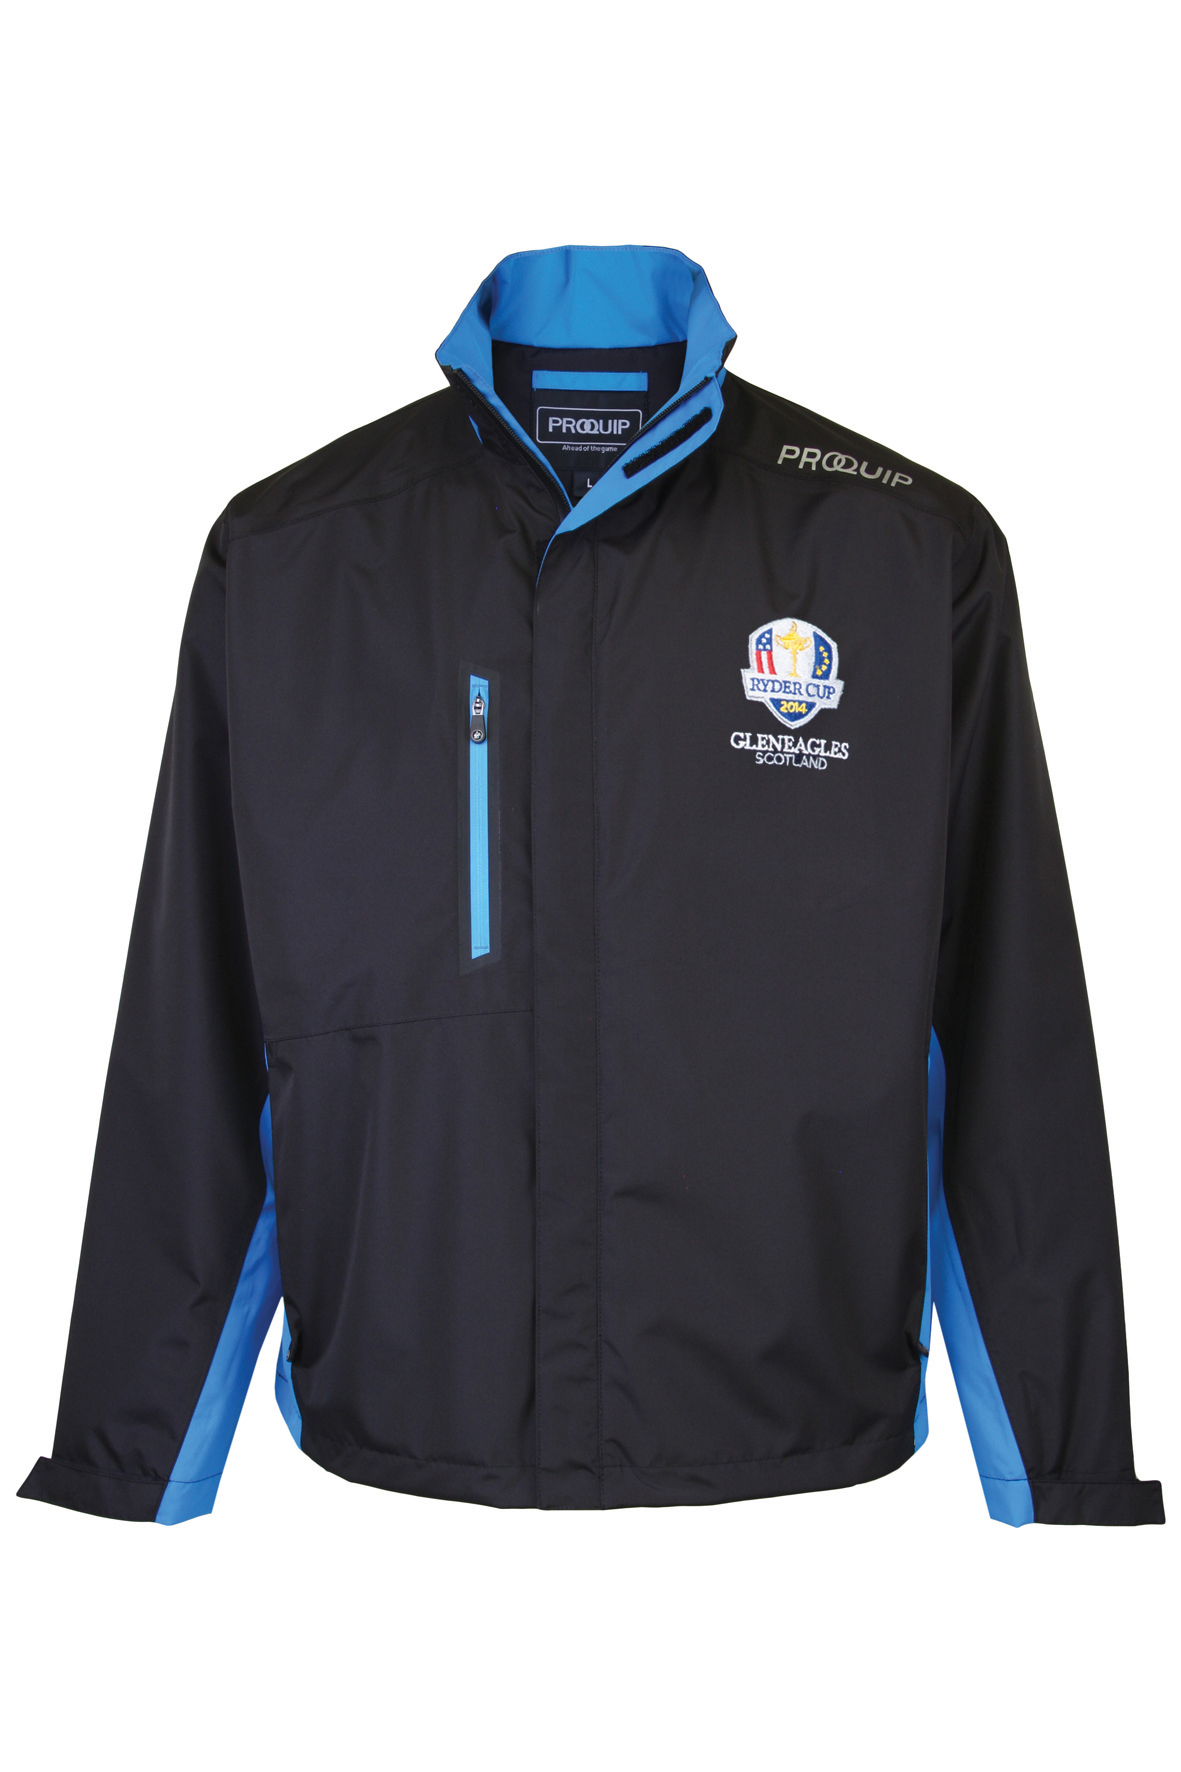 see attached Ultralite Performance Jacket